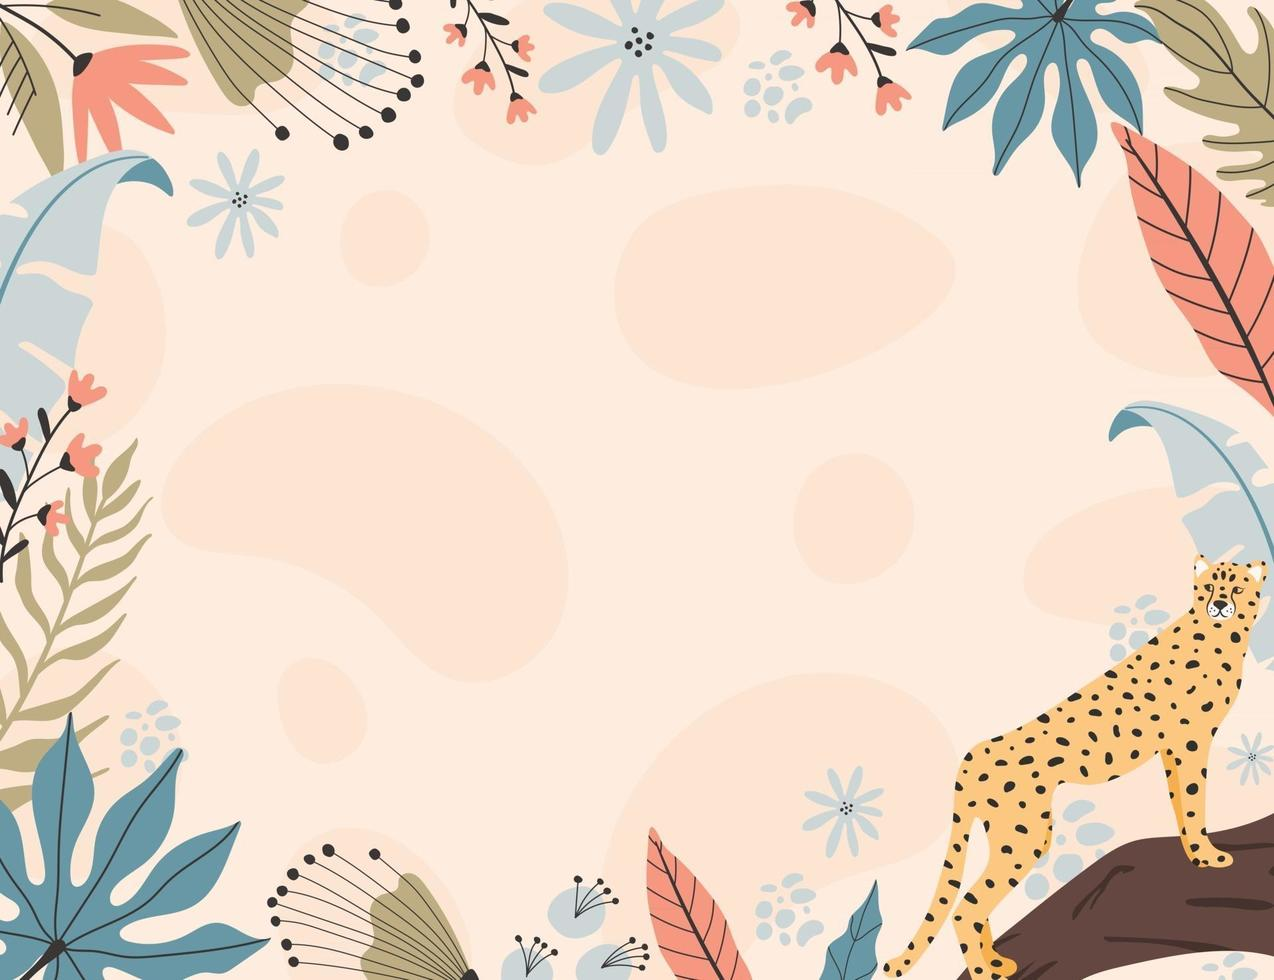 Tropical cheetah background, with hand drawn illustrations. vector